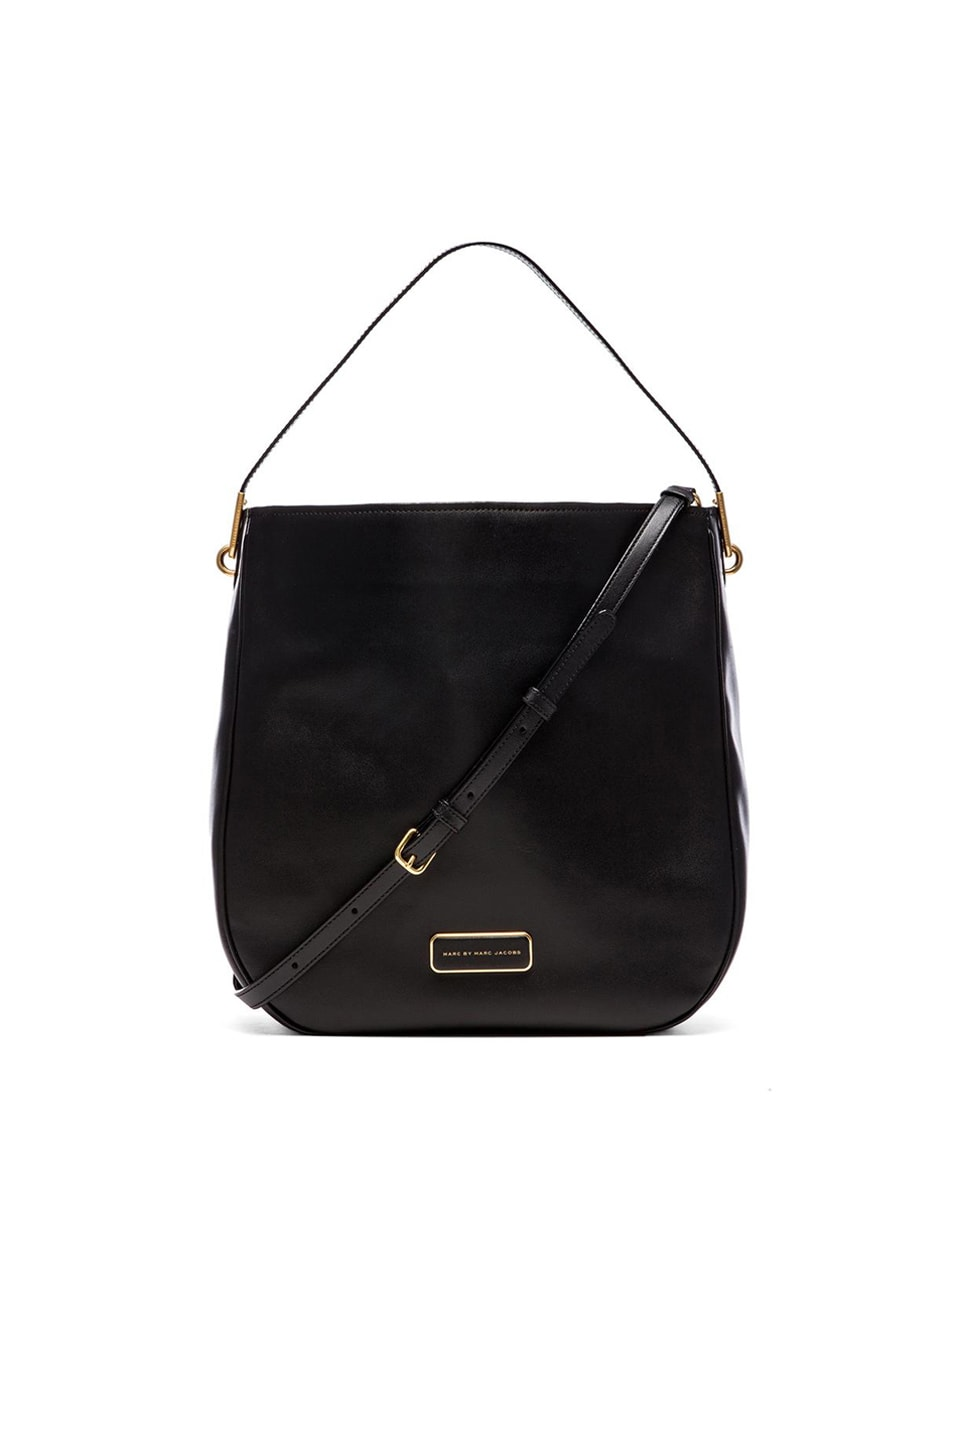 Marc by Marc Jacobs Ligero Hobo in Black